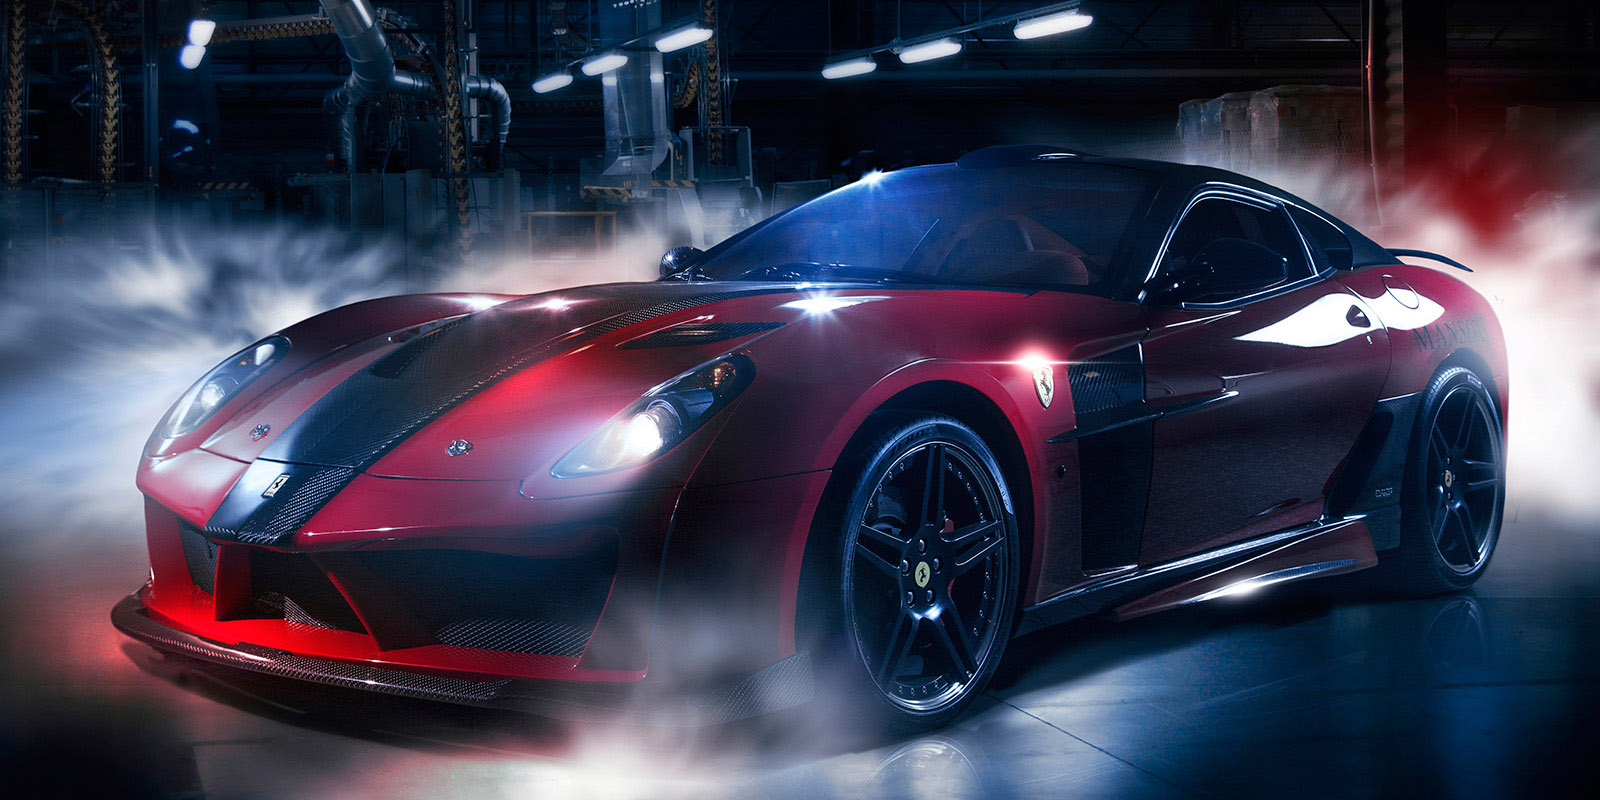 Ferrari sportcar editorial campaign digital art